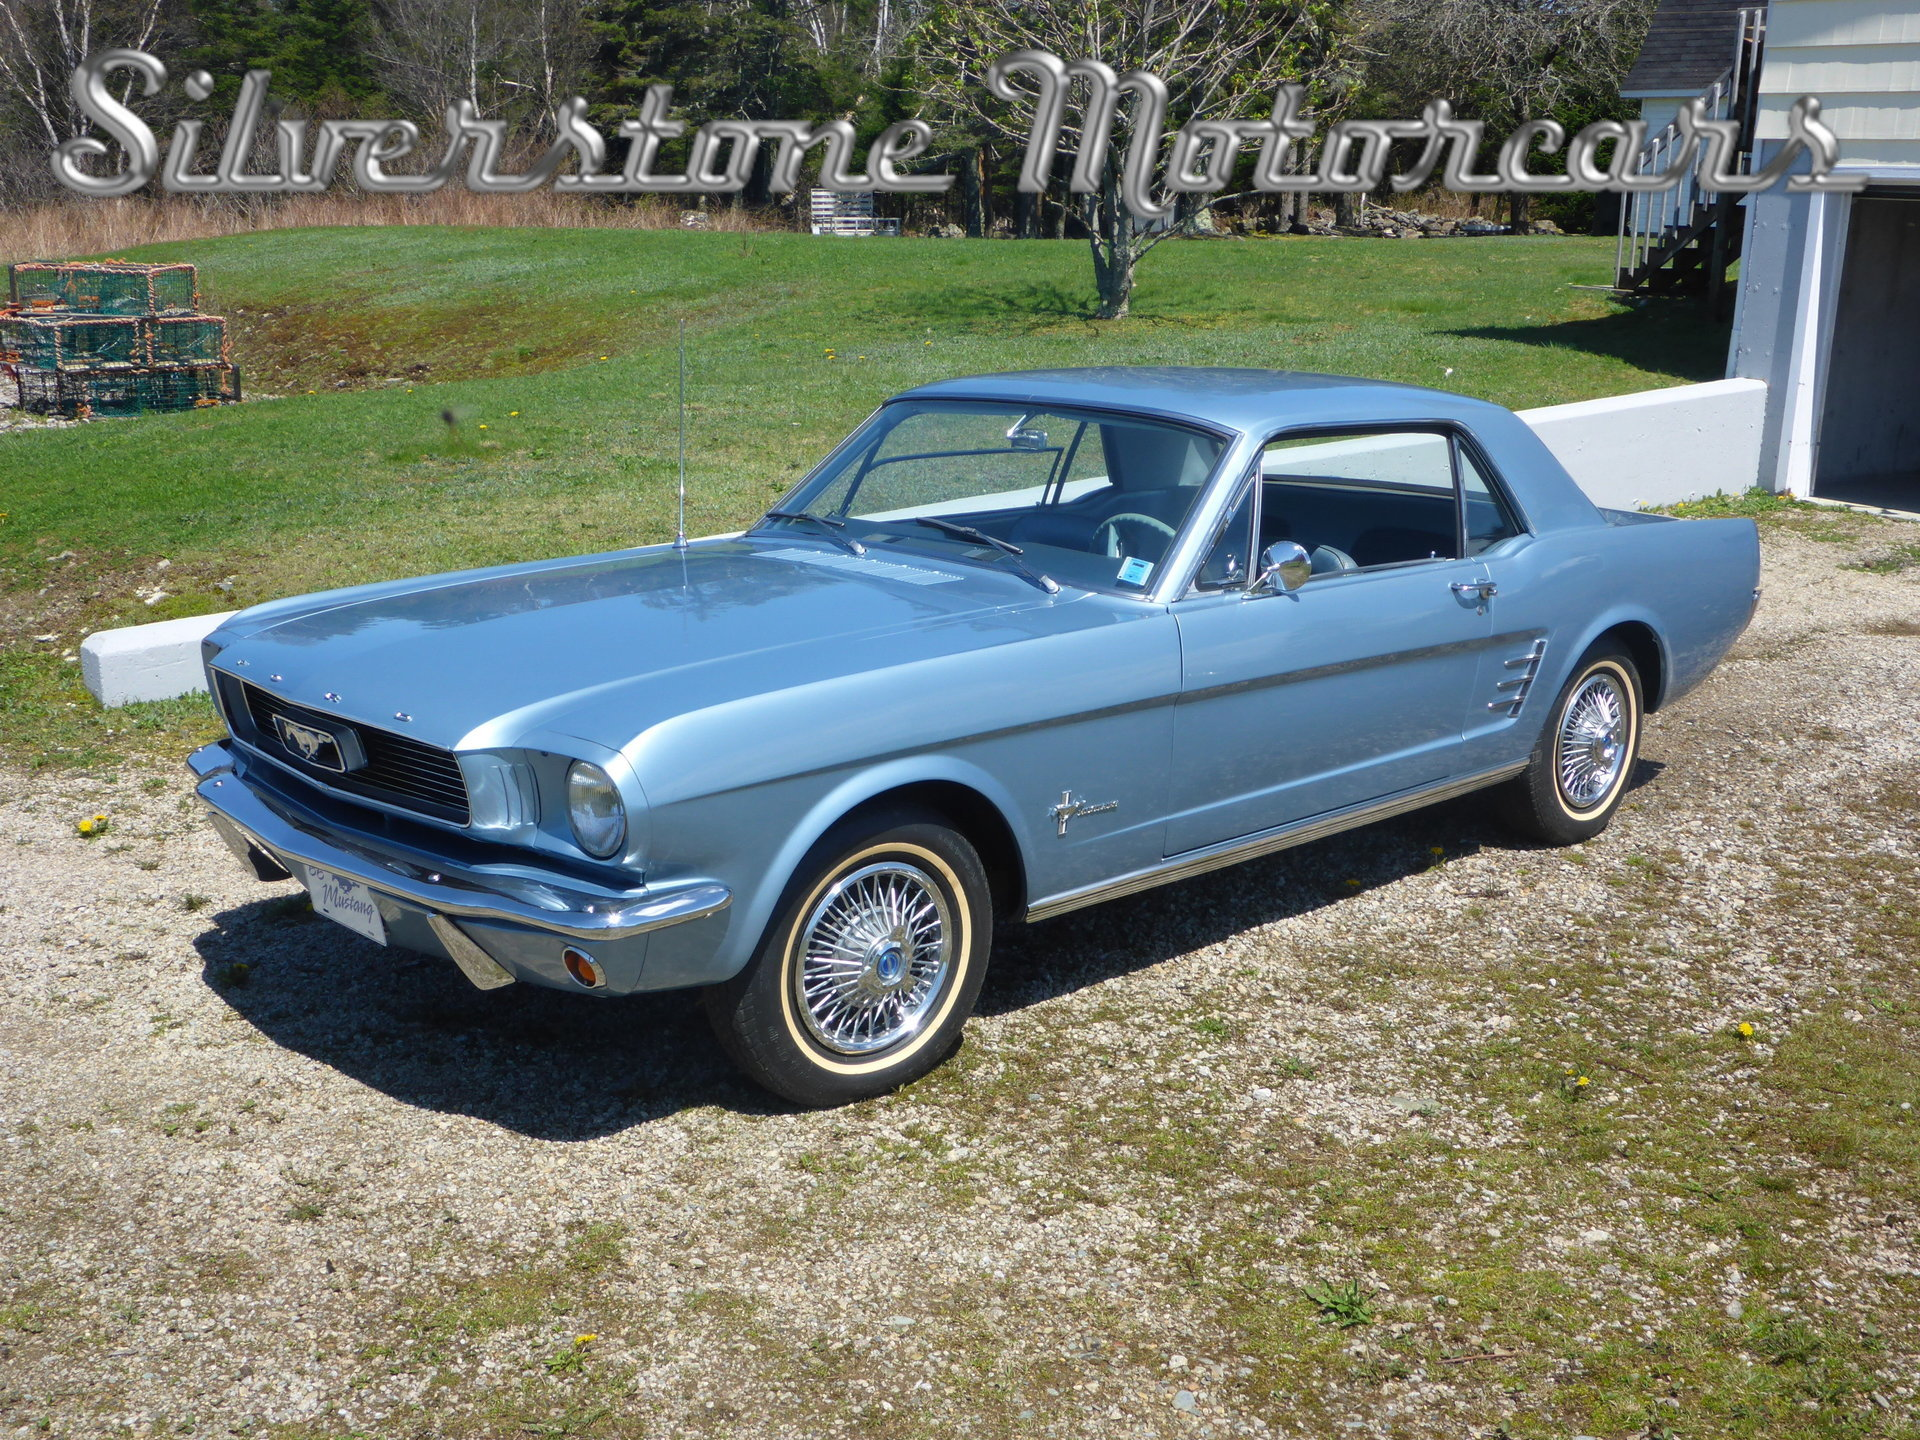 1966 ford mustang silverstone motorcars. Black Bedroom Furniture Sets. Home Design Ideas